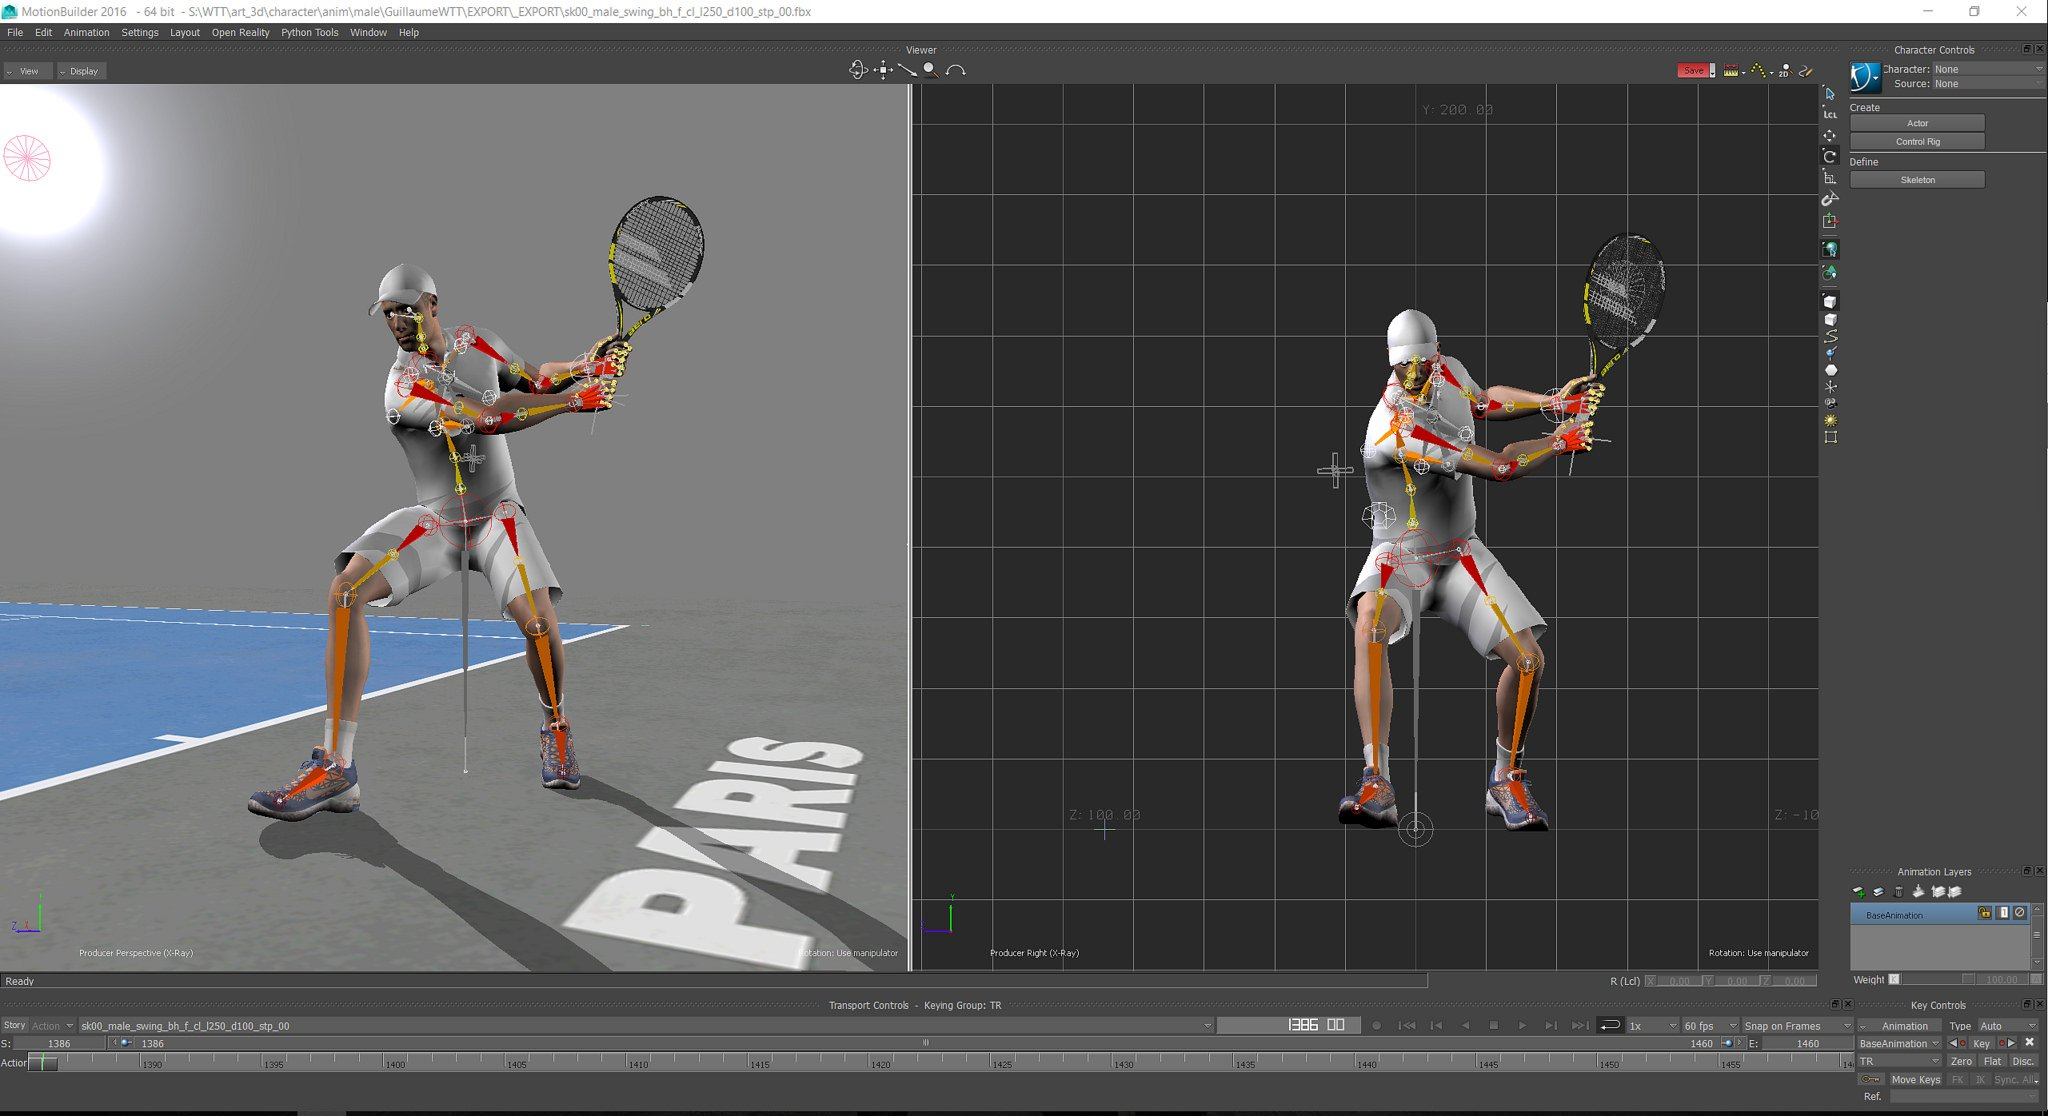 How the team at Breakpoint is going all-out for the animations in Tennis World Tour: https://t.co/xONO6oNelw https://t.co/IMSTBJXljF